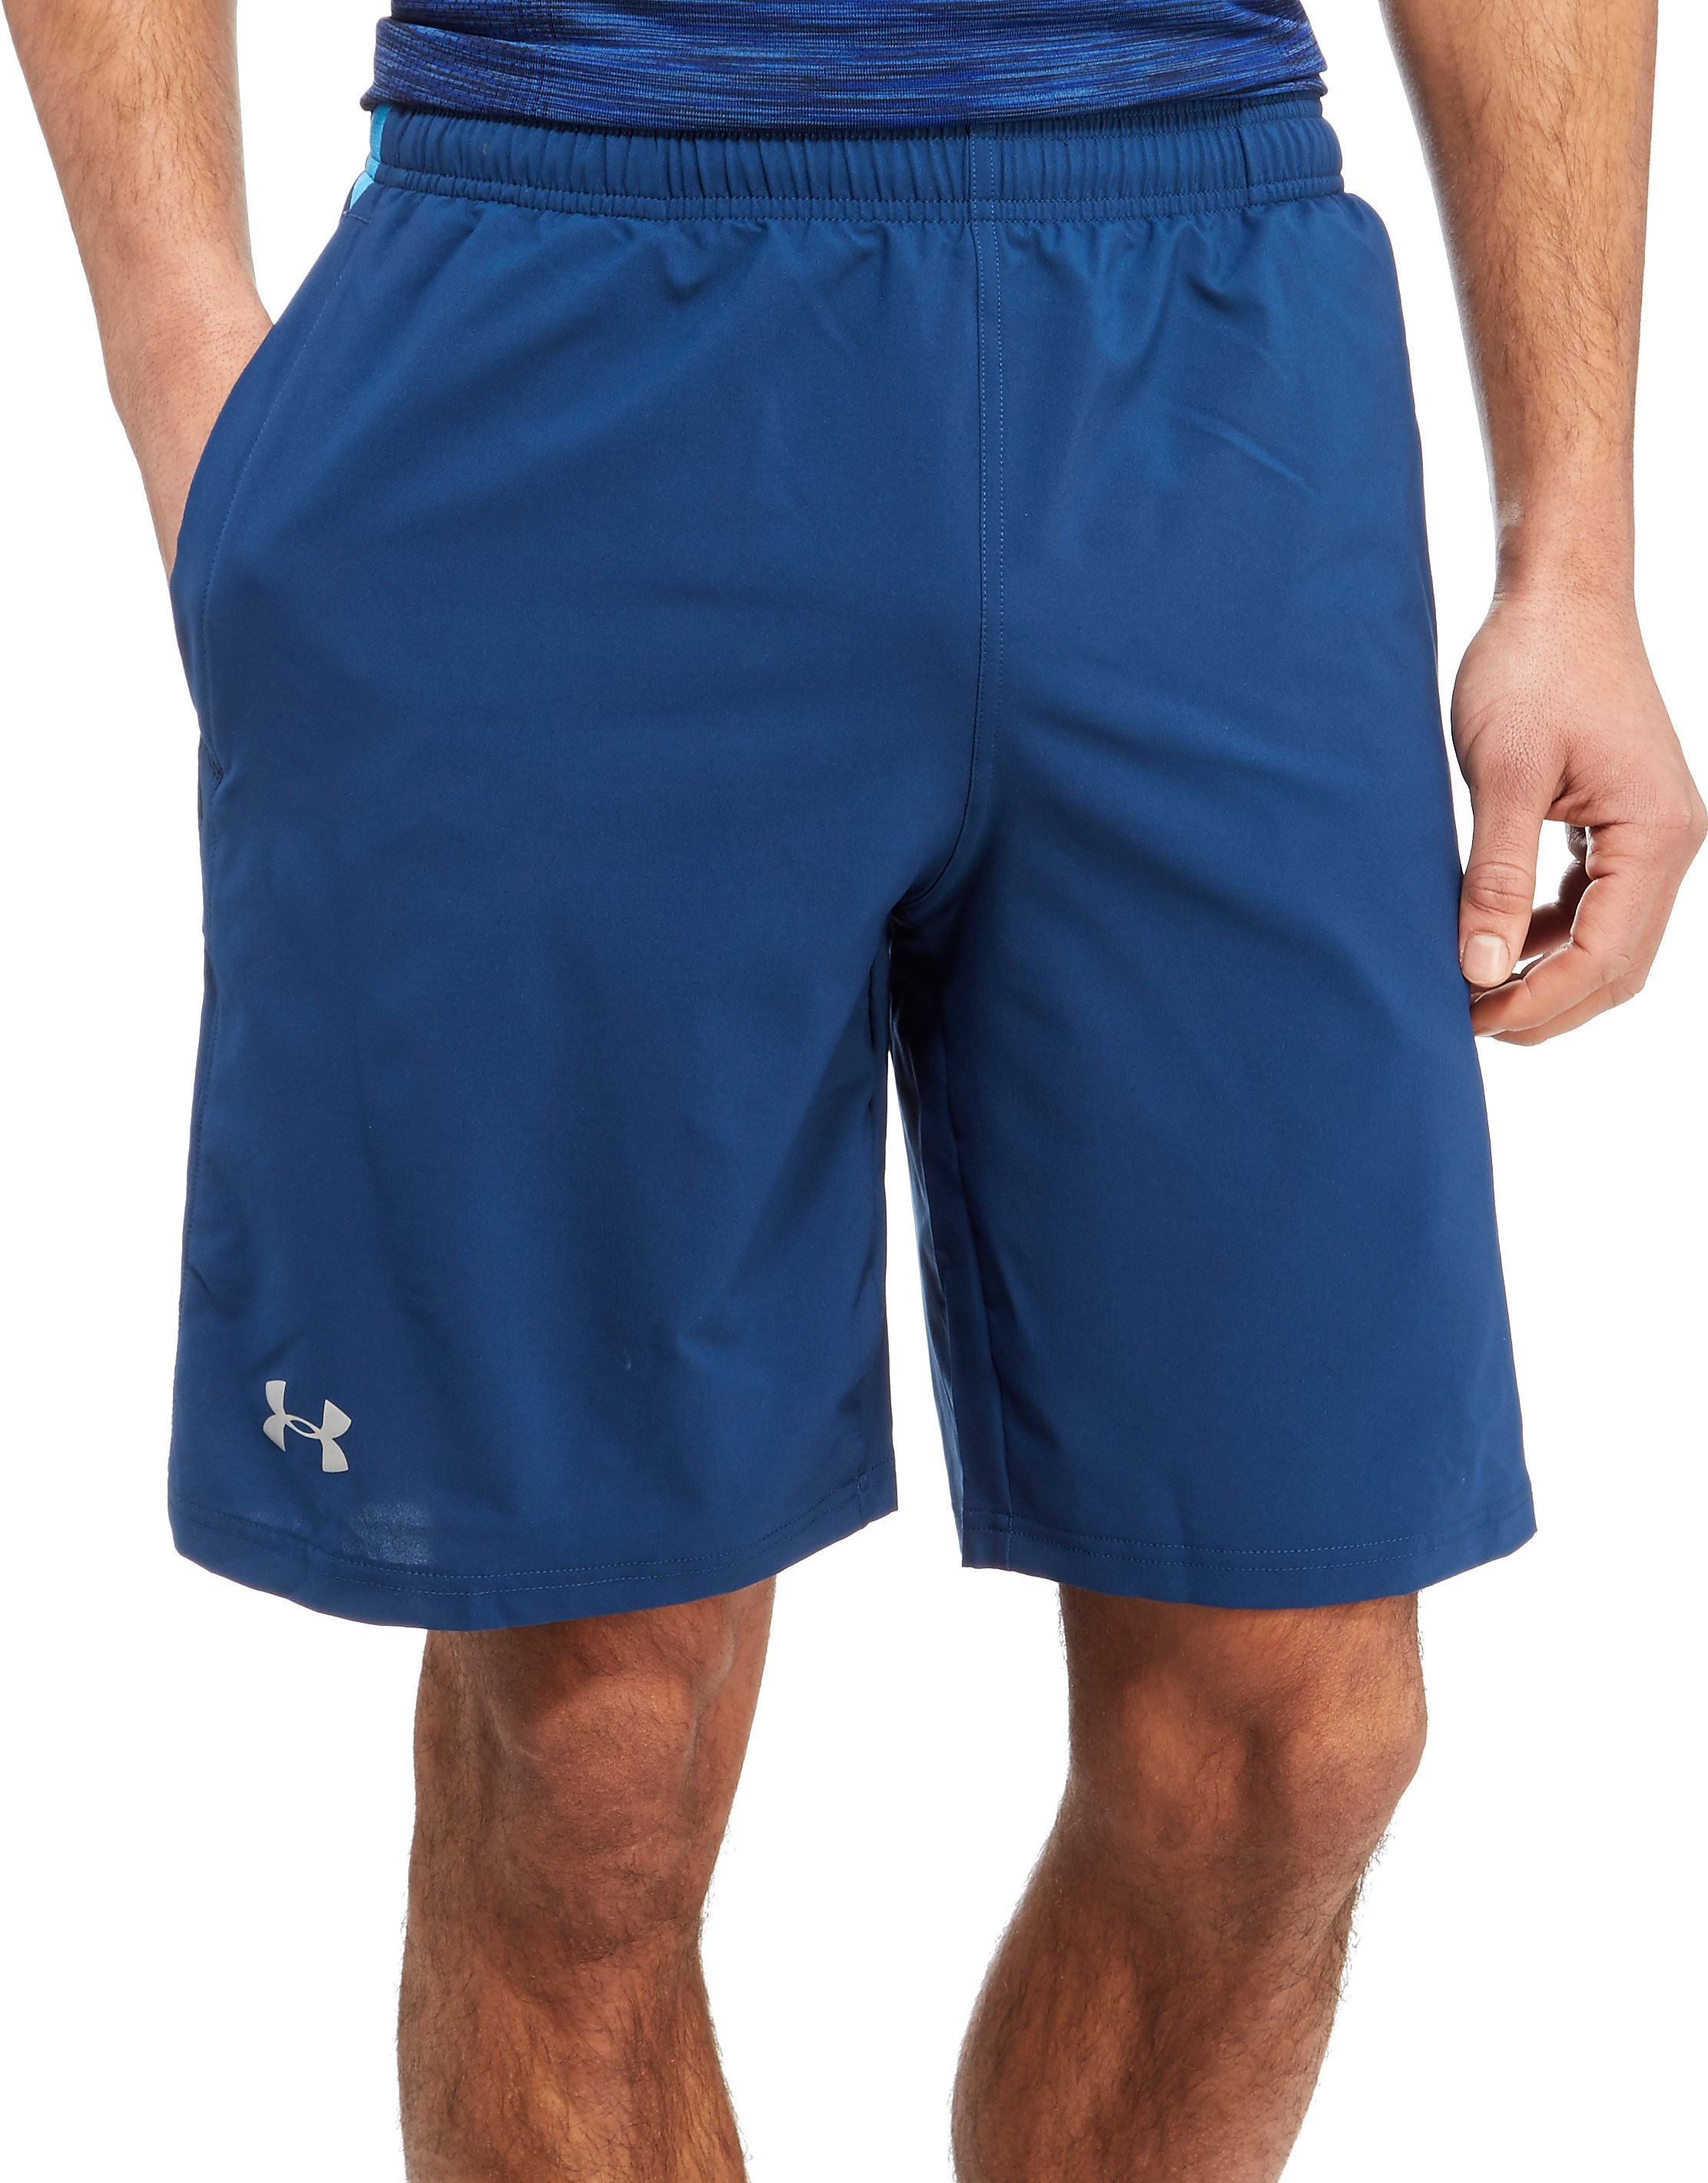 Under Armour Launch 9 Inch Short